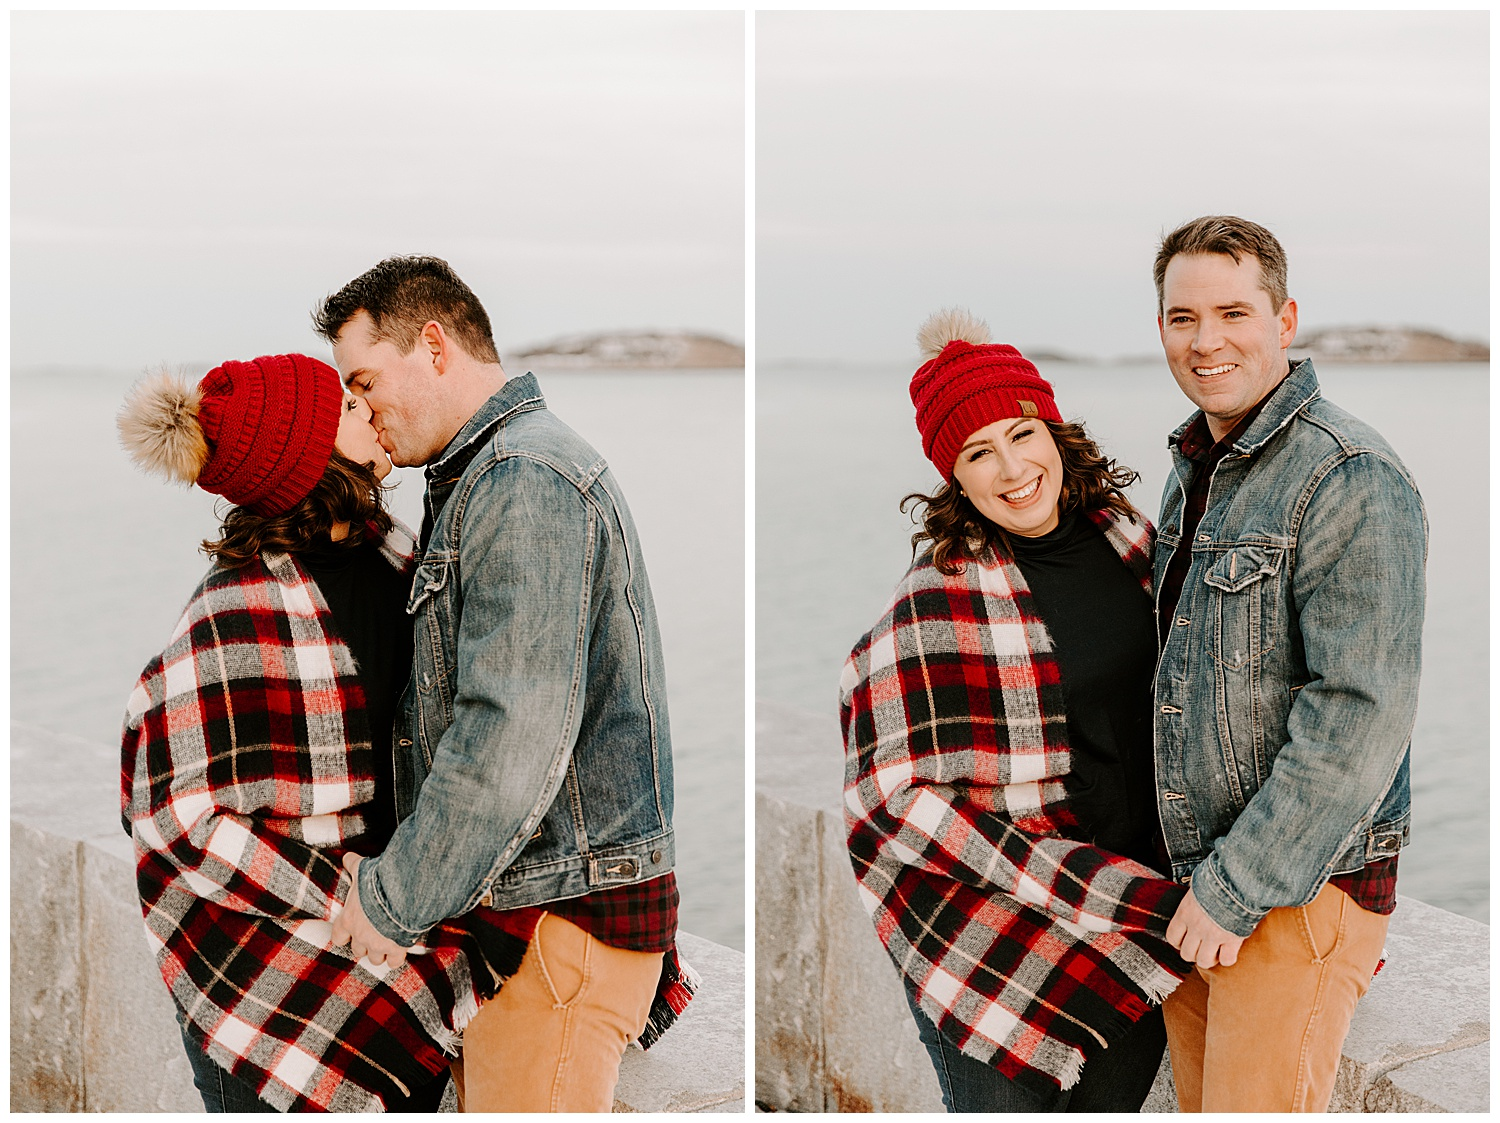 kevin-danielle-snow-winter-engagement-session-castle-island-boston13.jpg